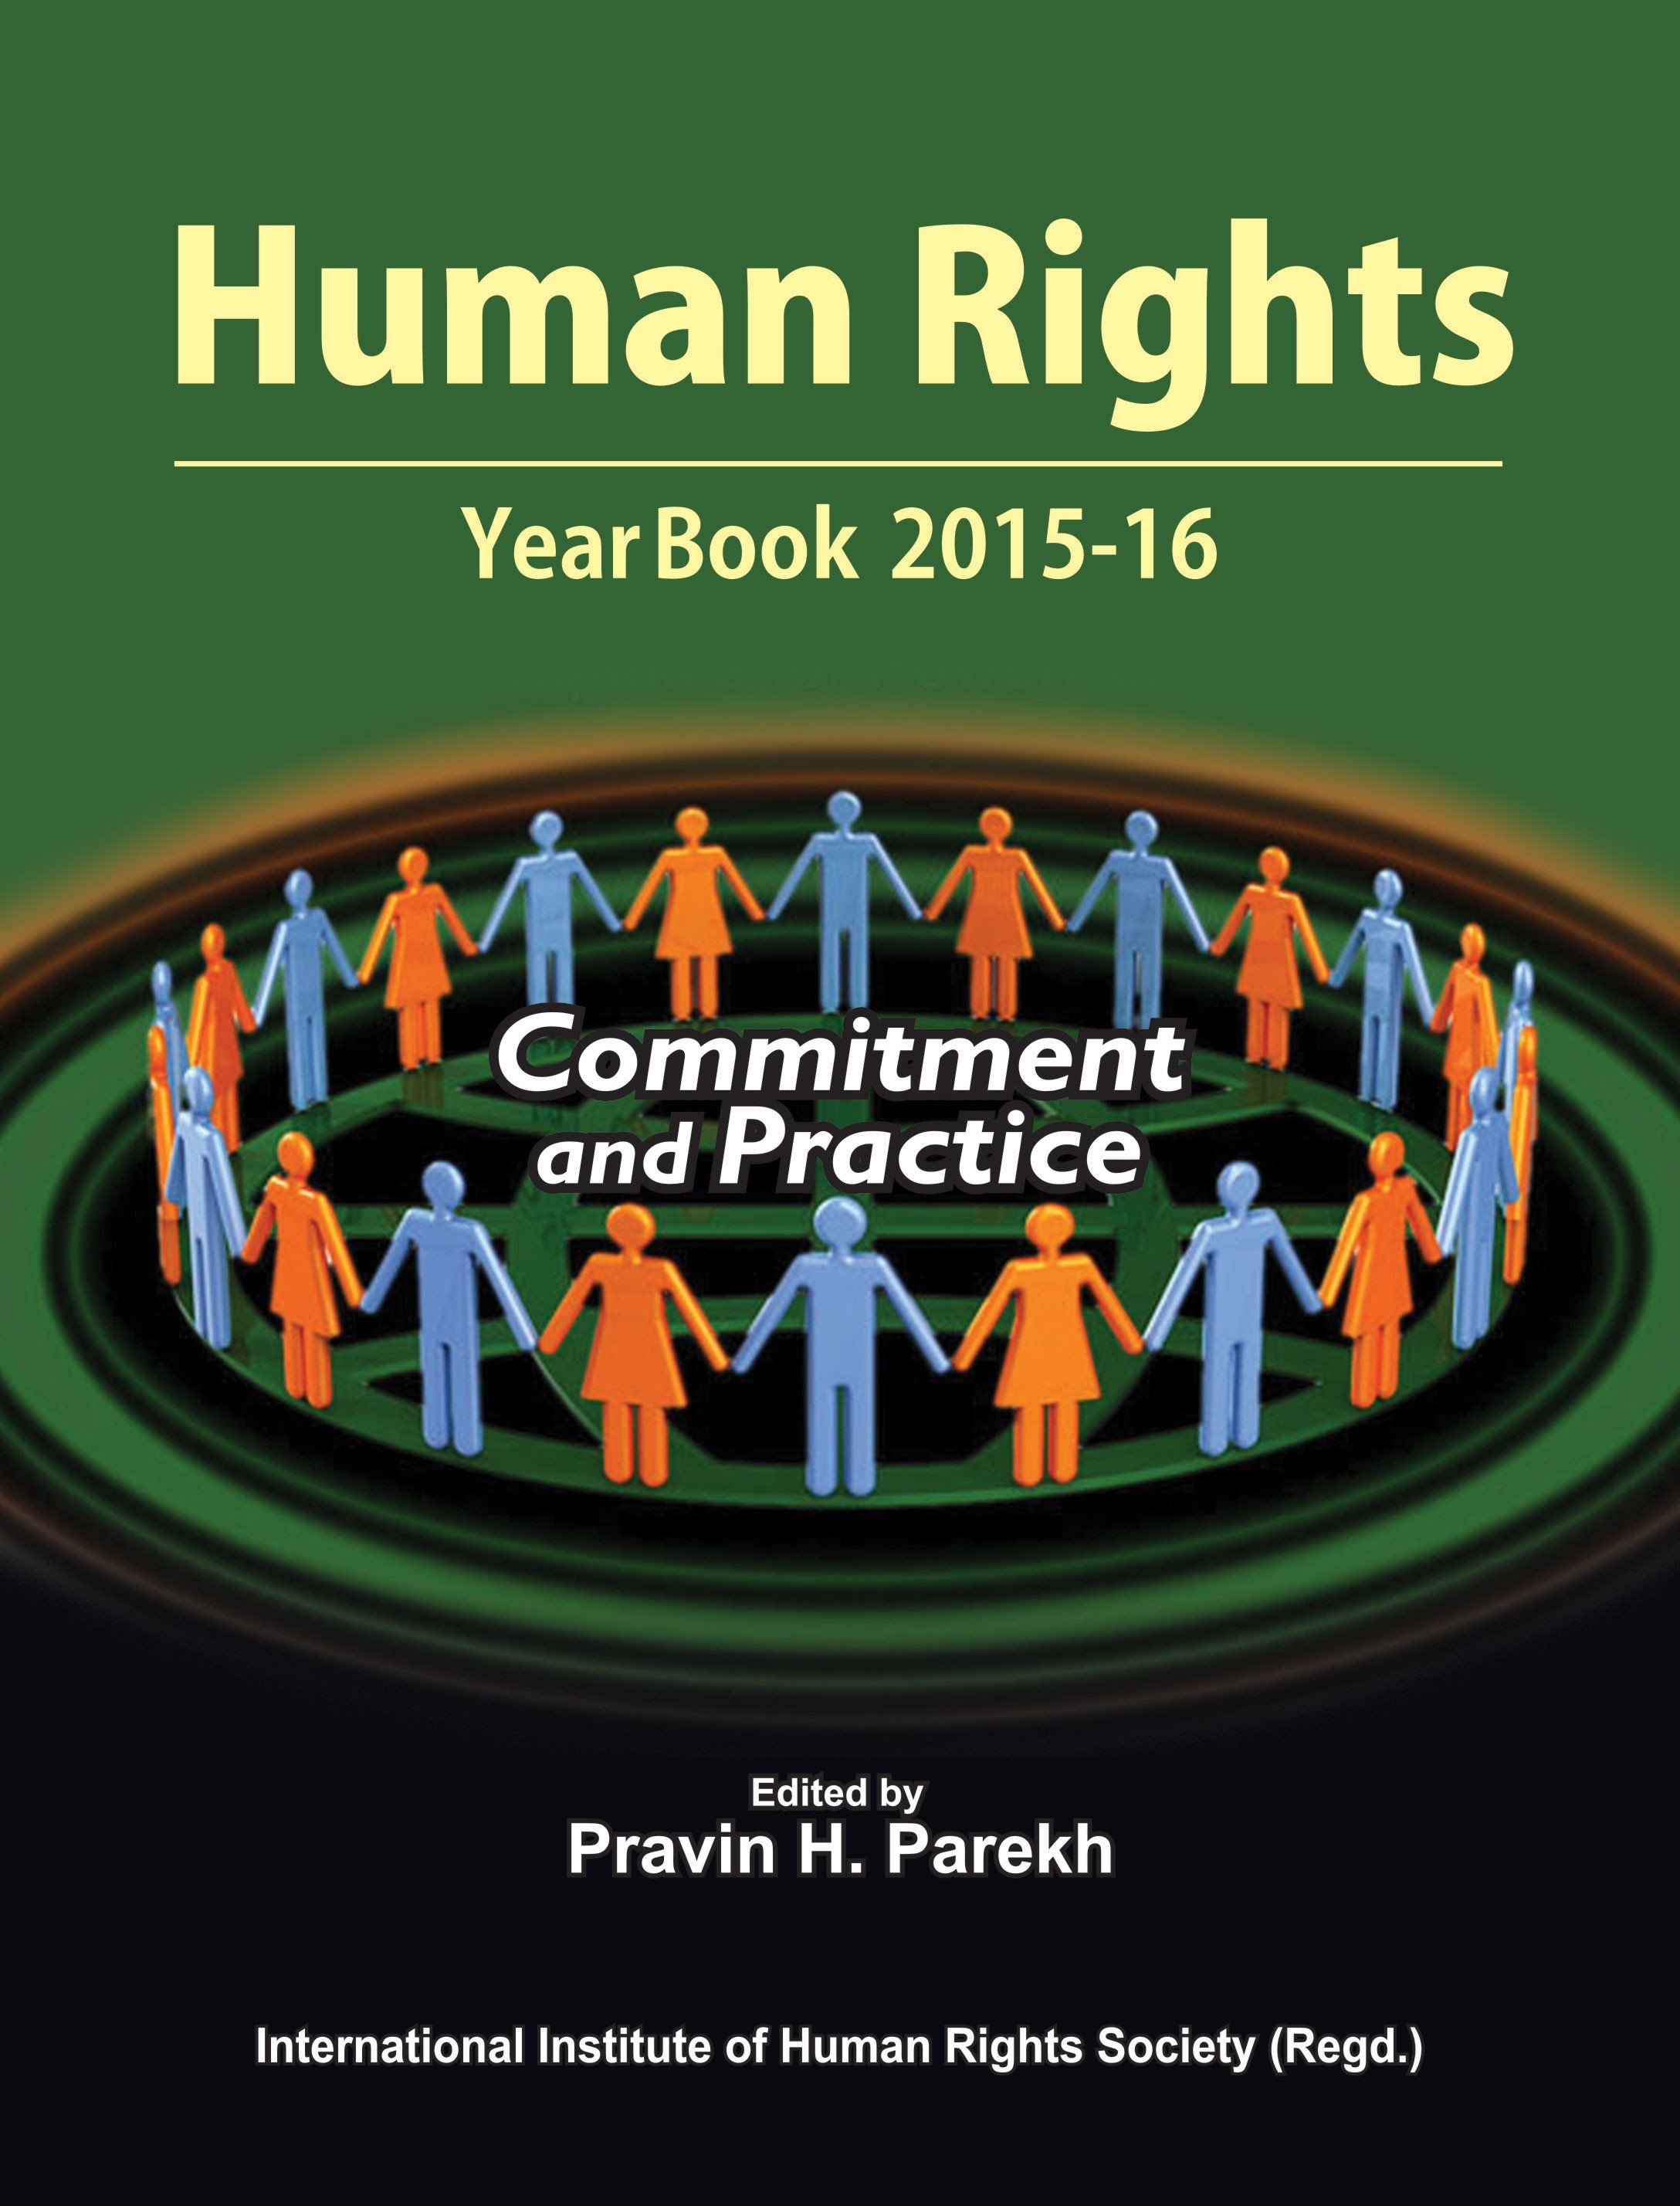 Human Rights Year Book 2015-16